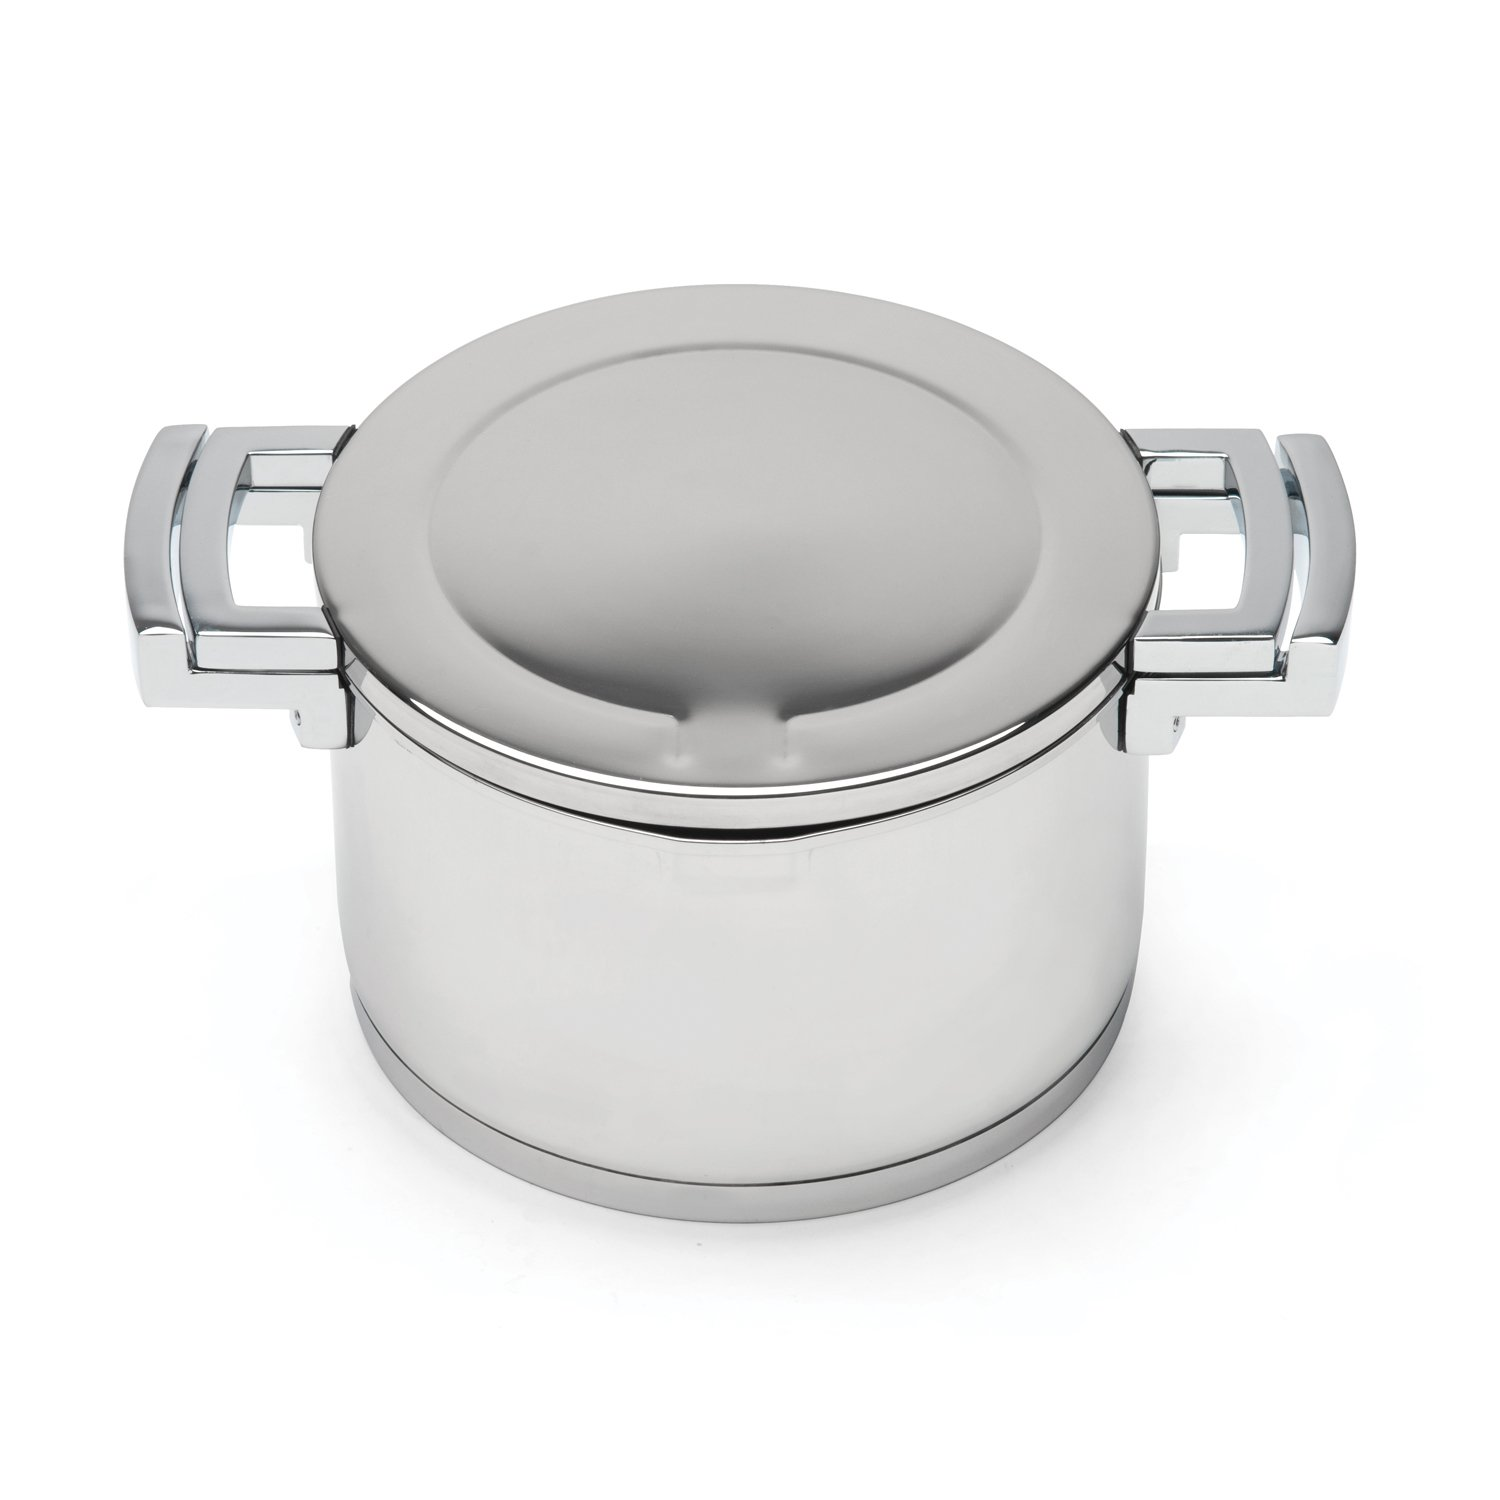 BergHOFF Neo Covered Stainless Steel Casserole, 2.5 quart, Silver